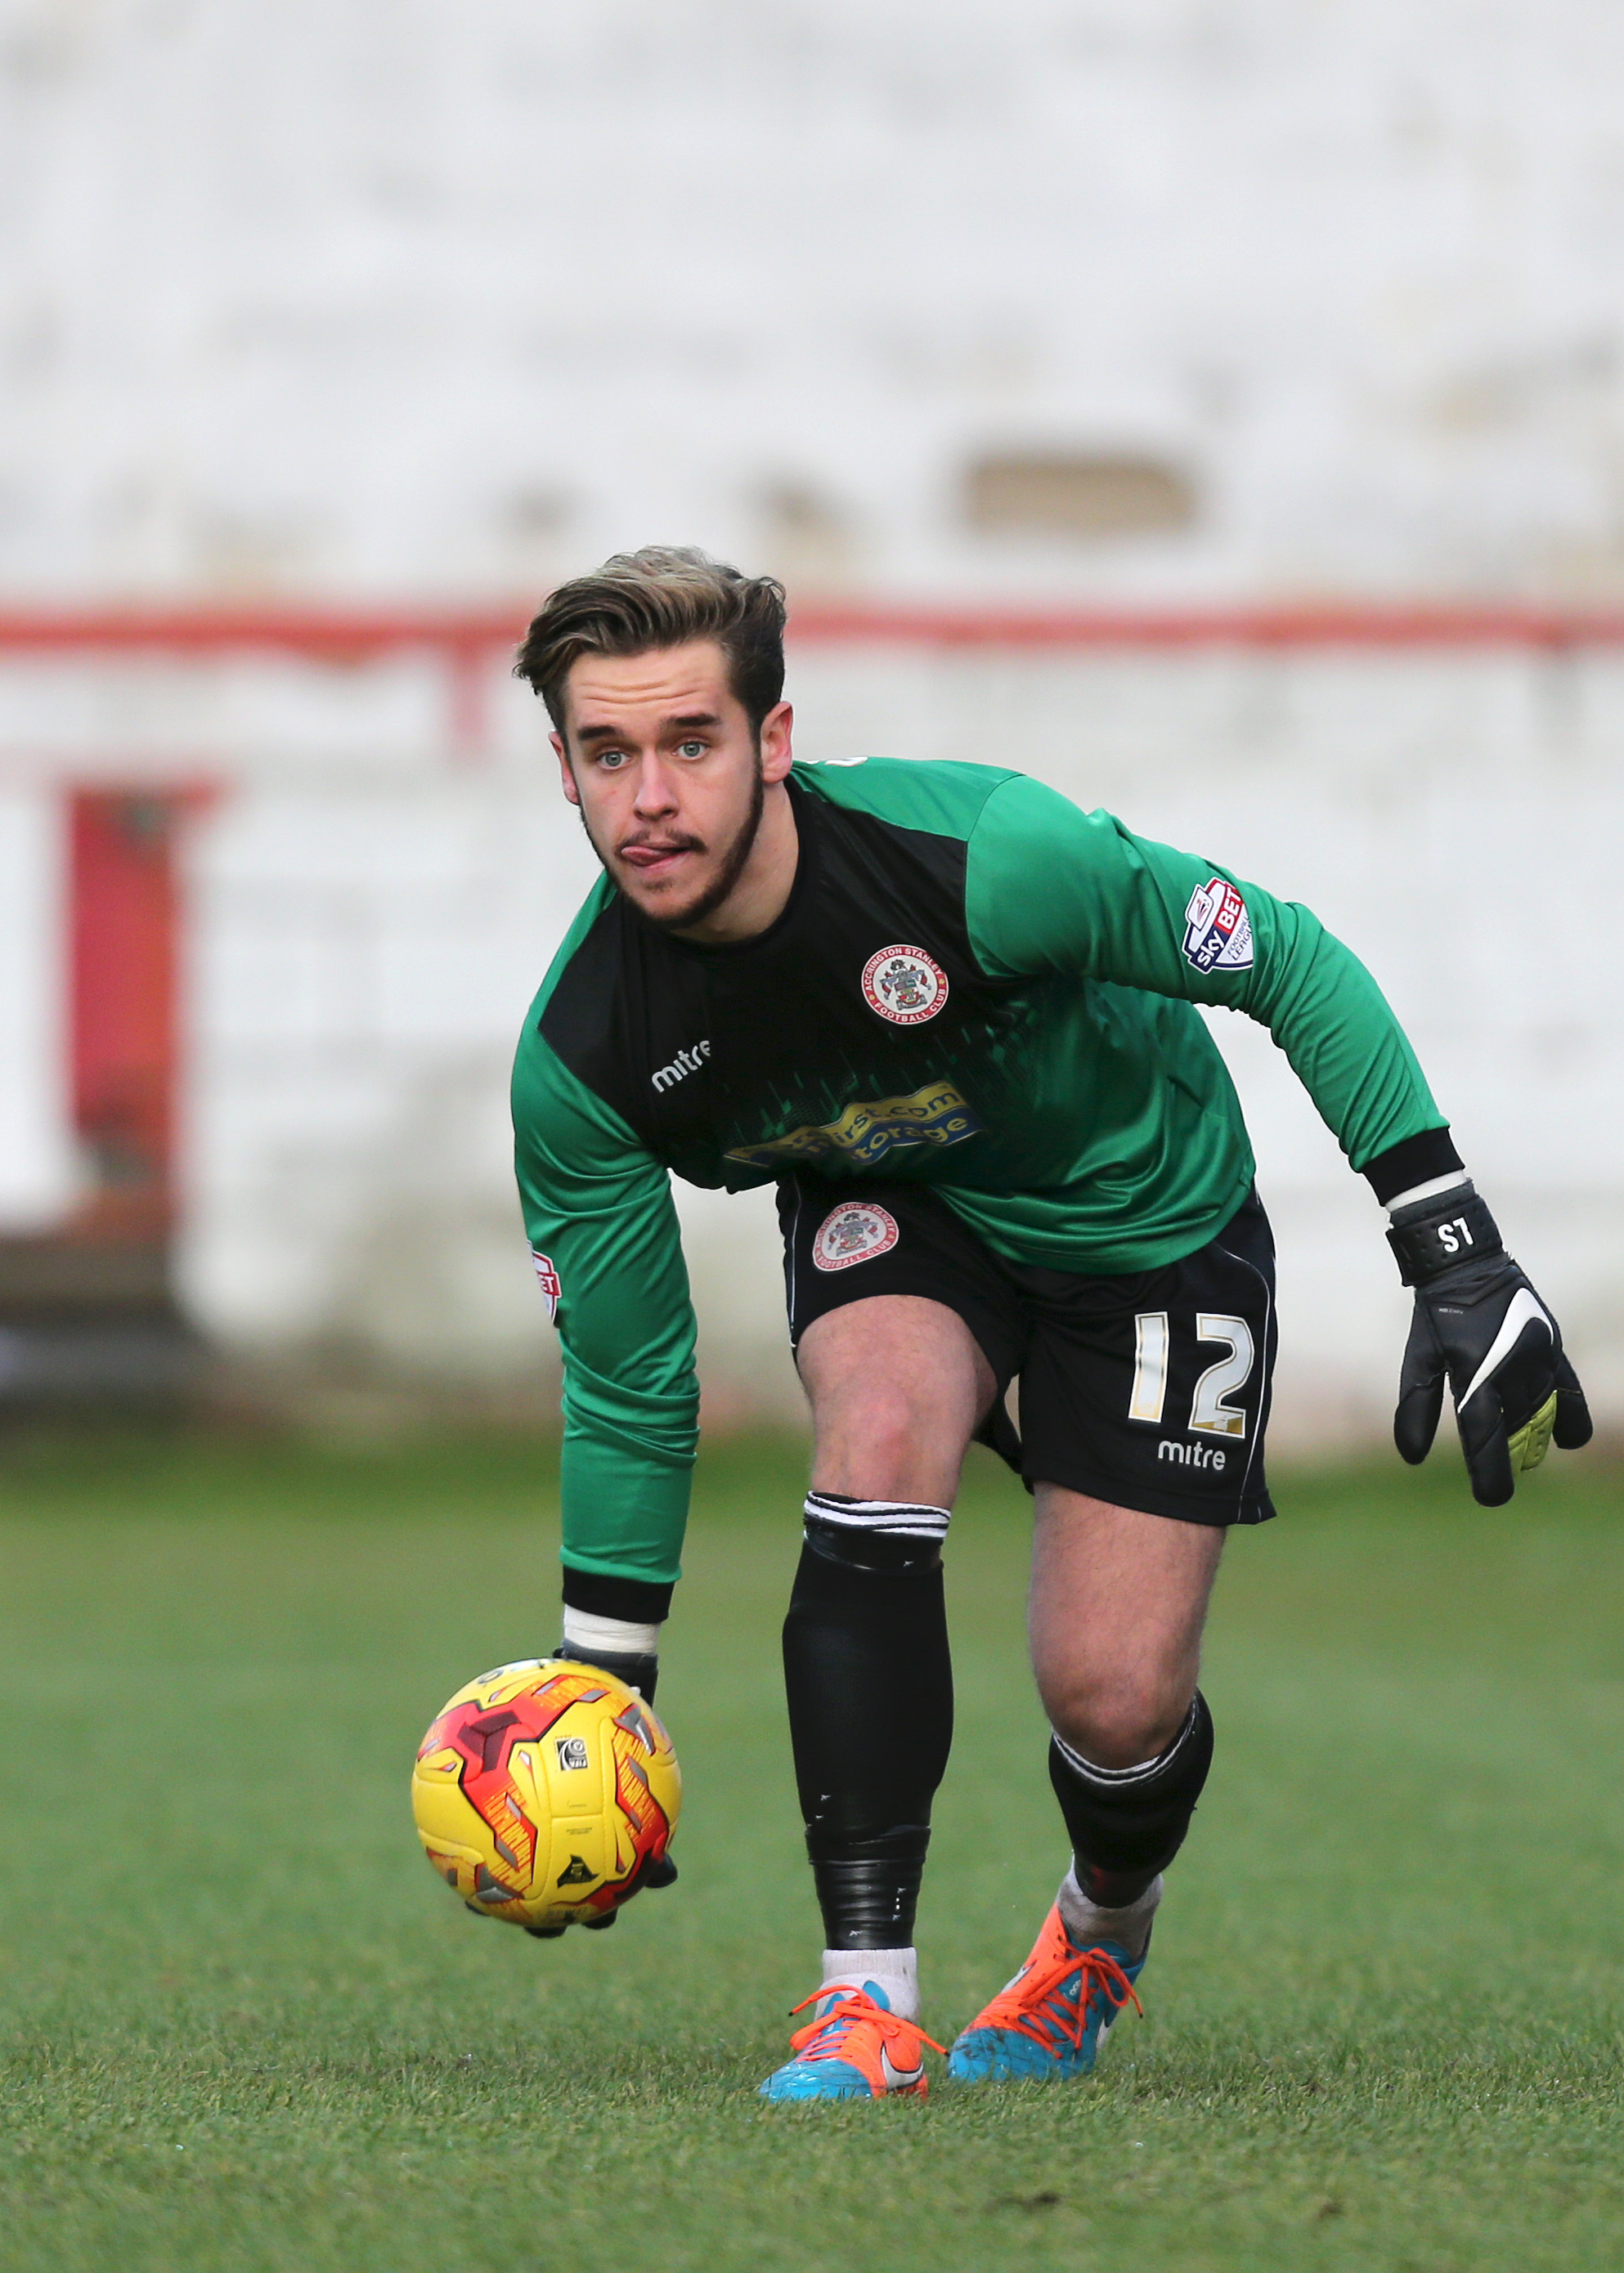 New signing: Goalkeeper Luke Simpson in action for former club Accrington Stanley